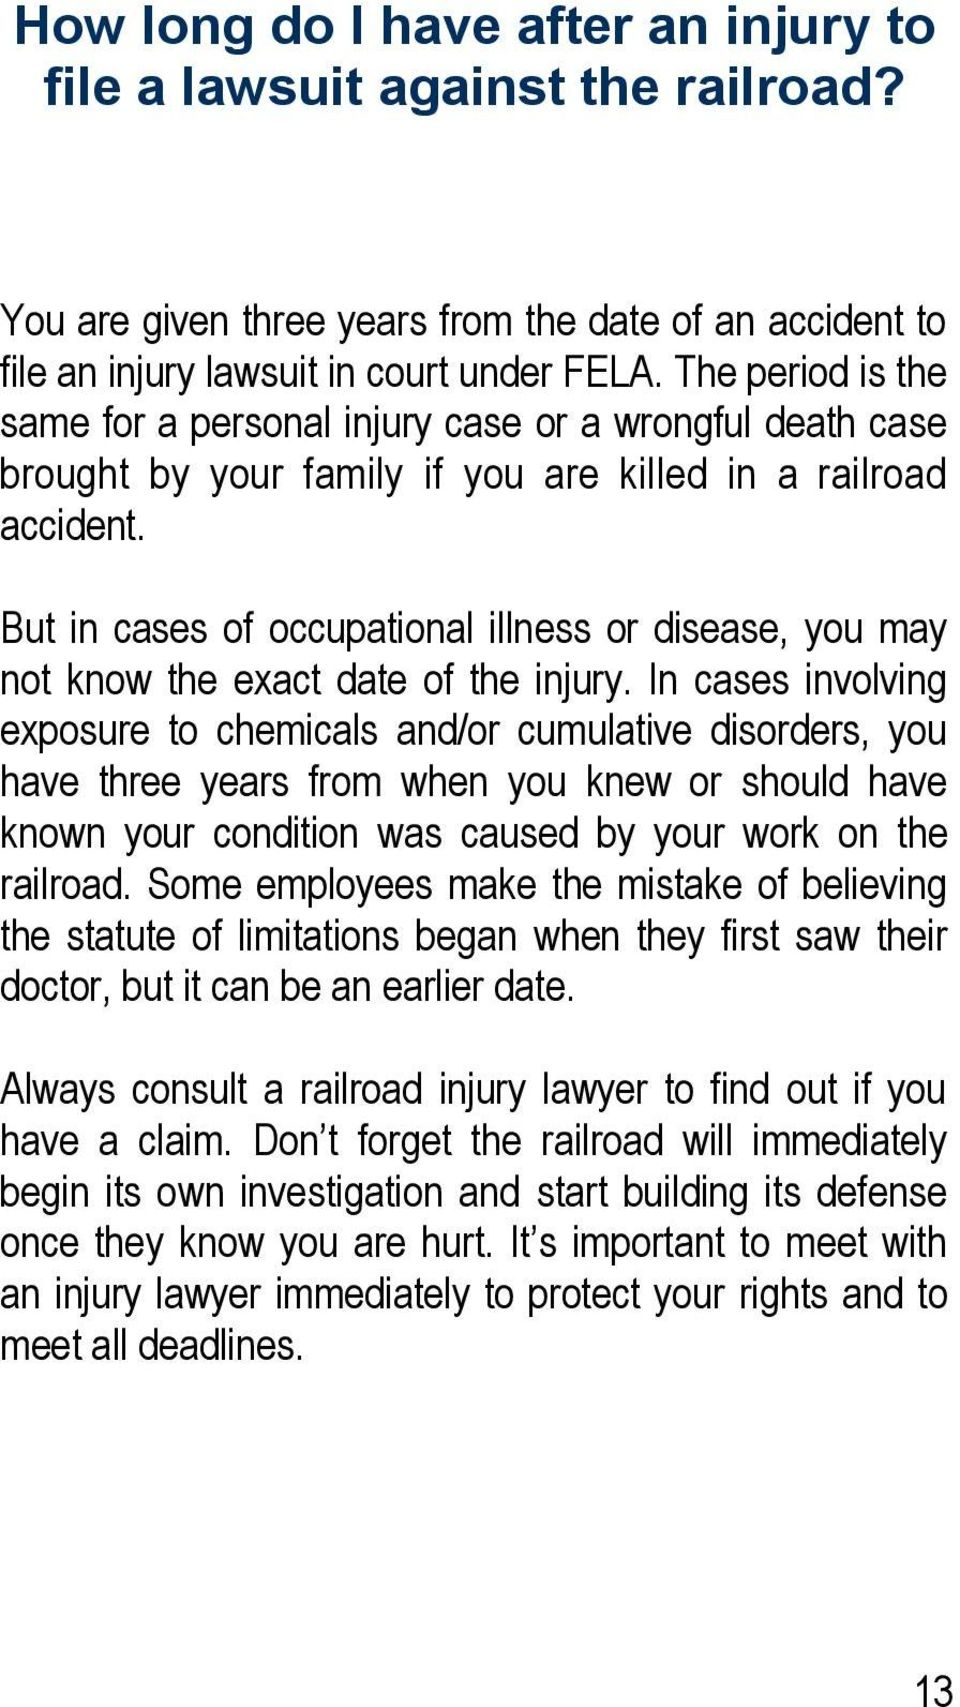 But in cases of occupational illness or disease, you may not know the exact date of the injury.